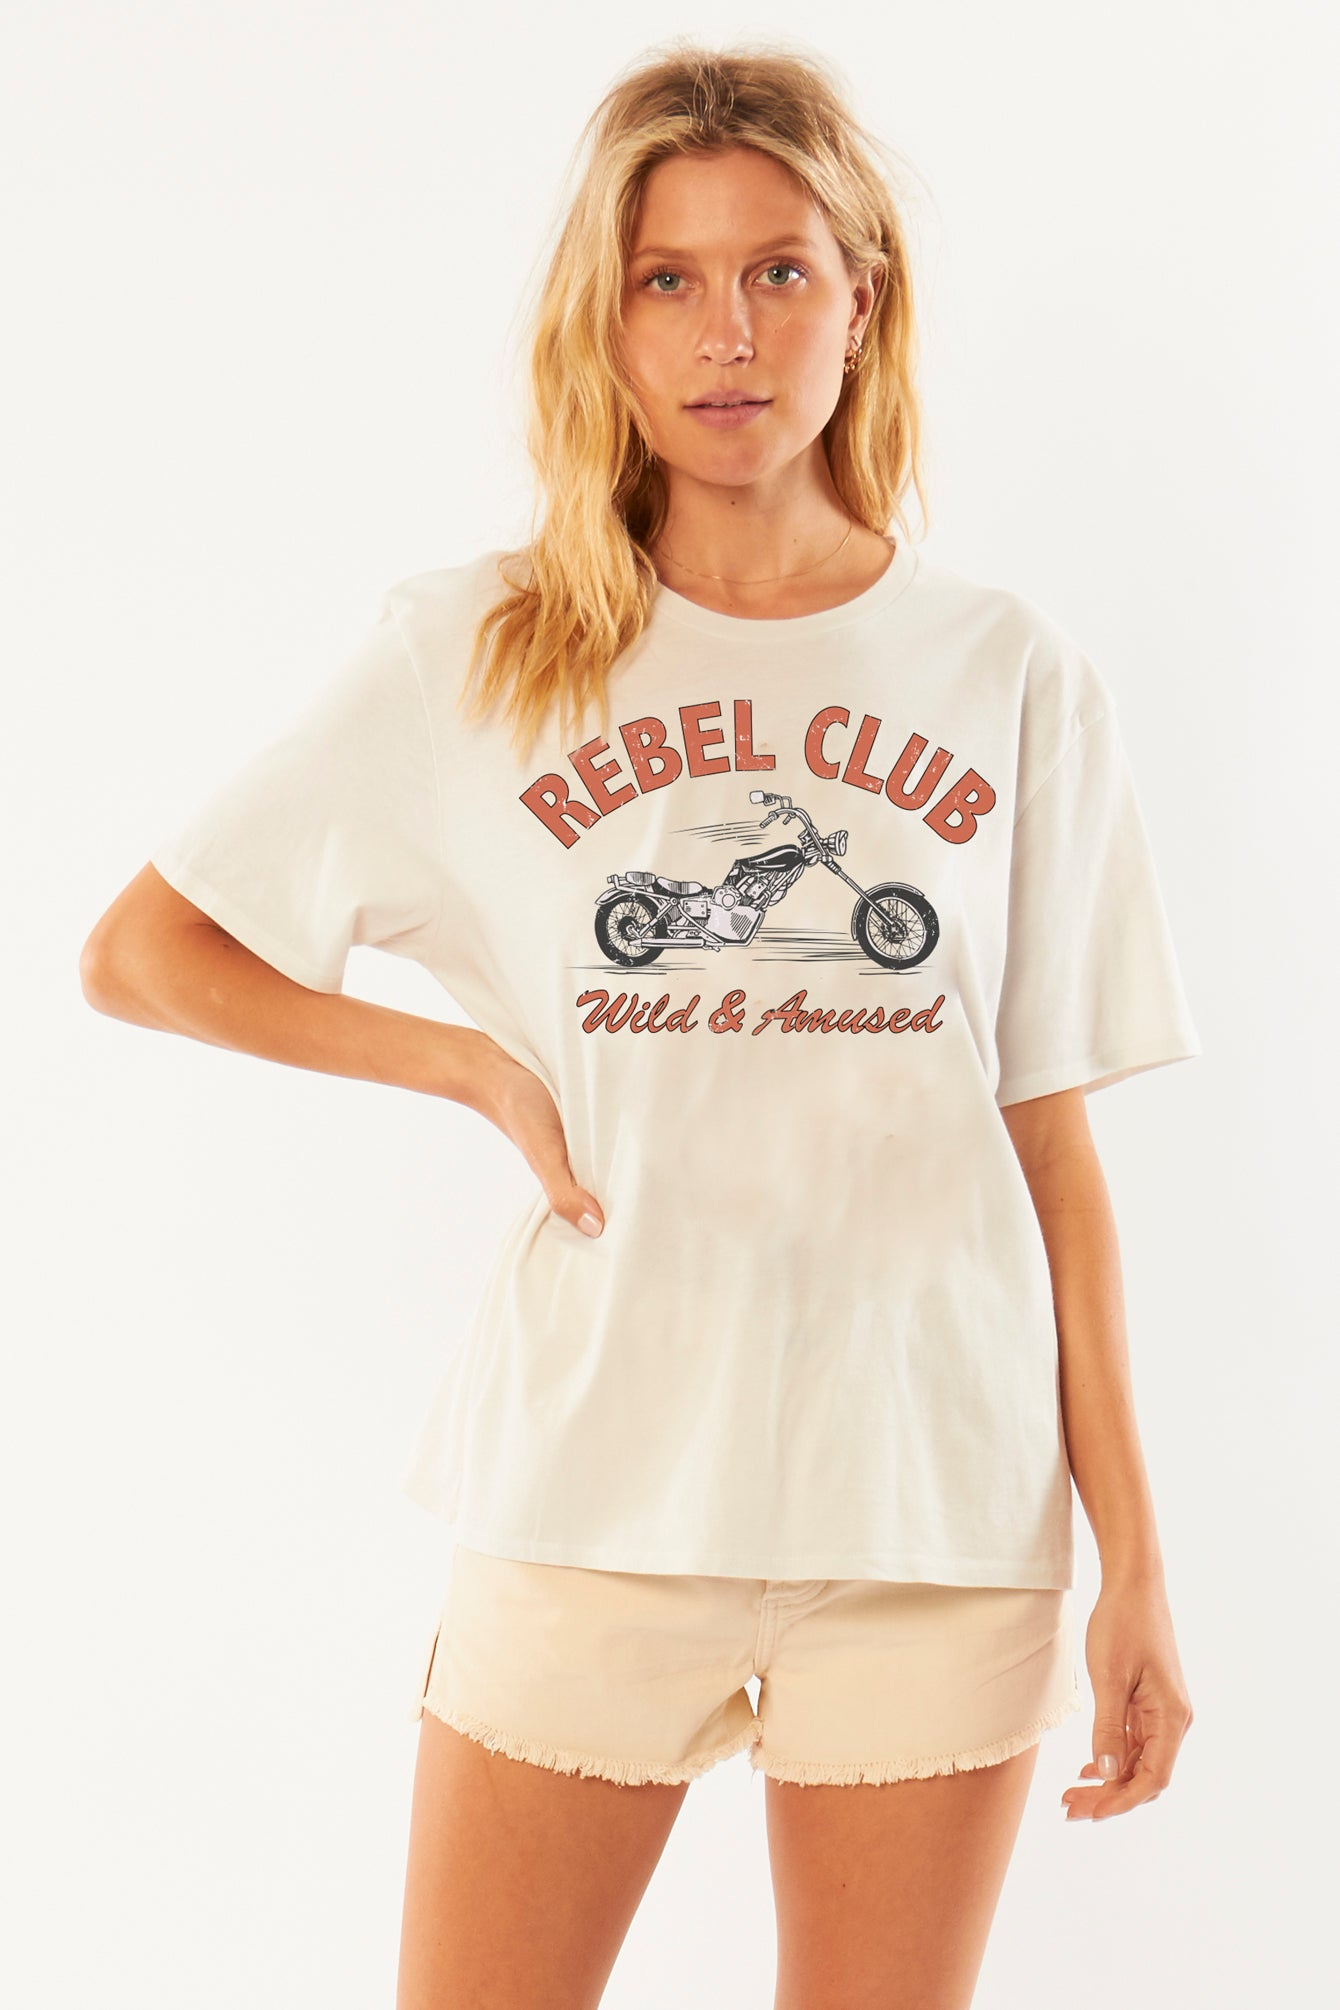 Rebel Club Knit Tee in Vintage White